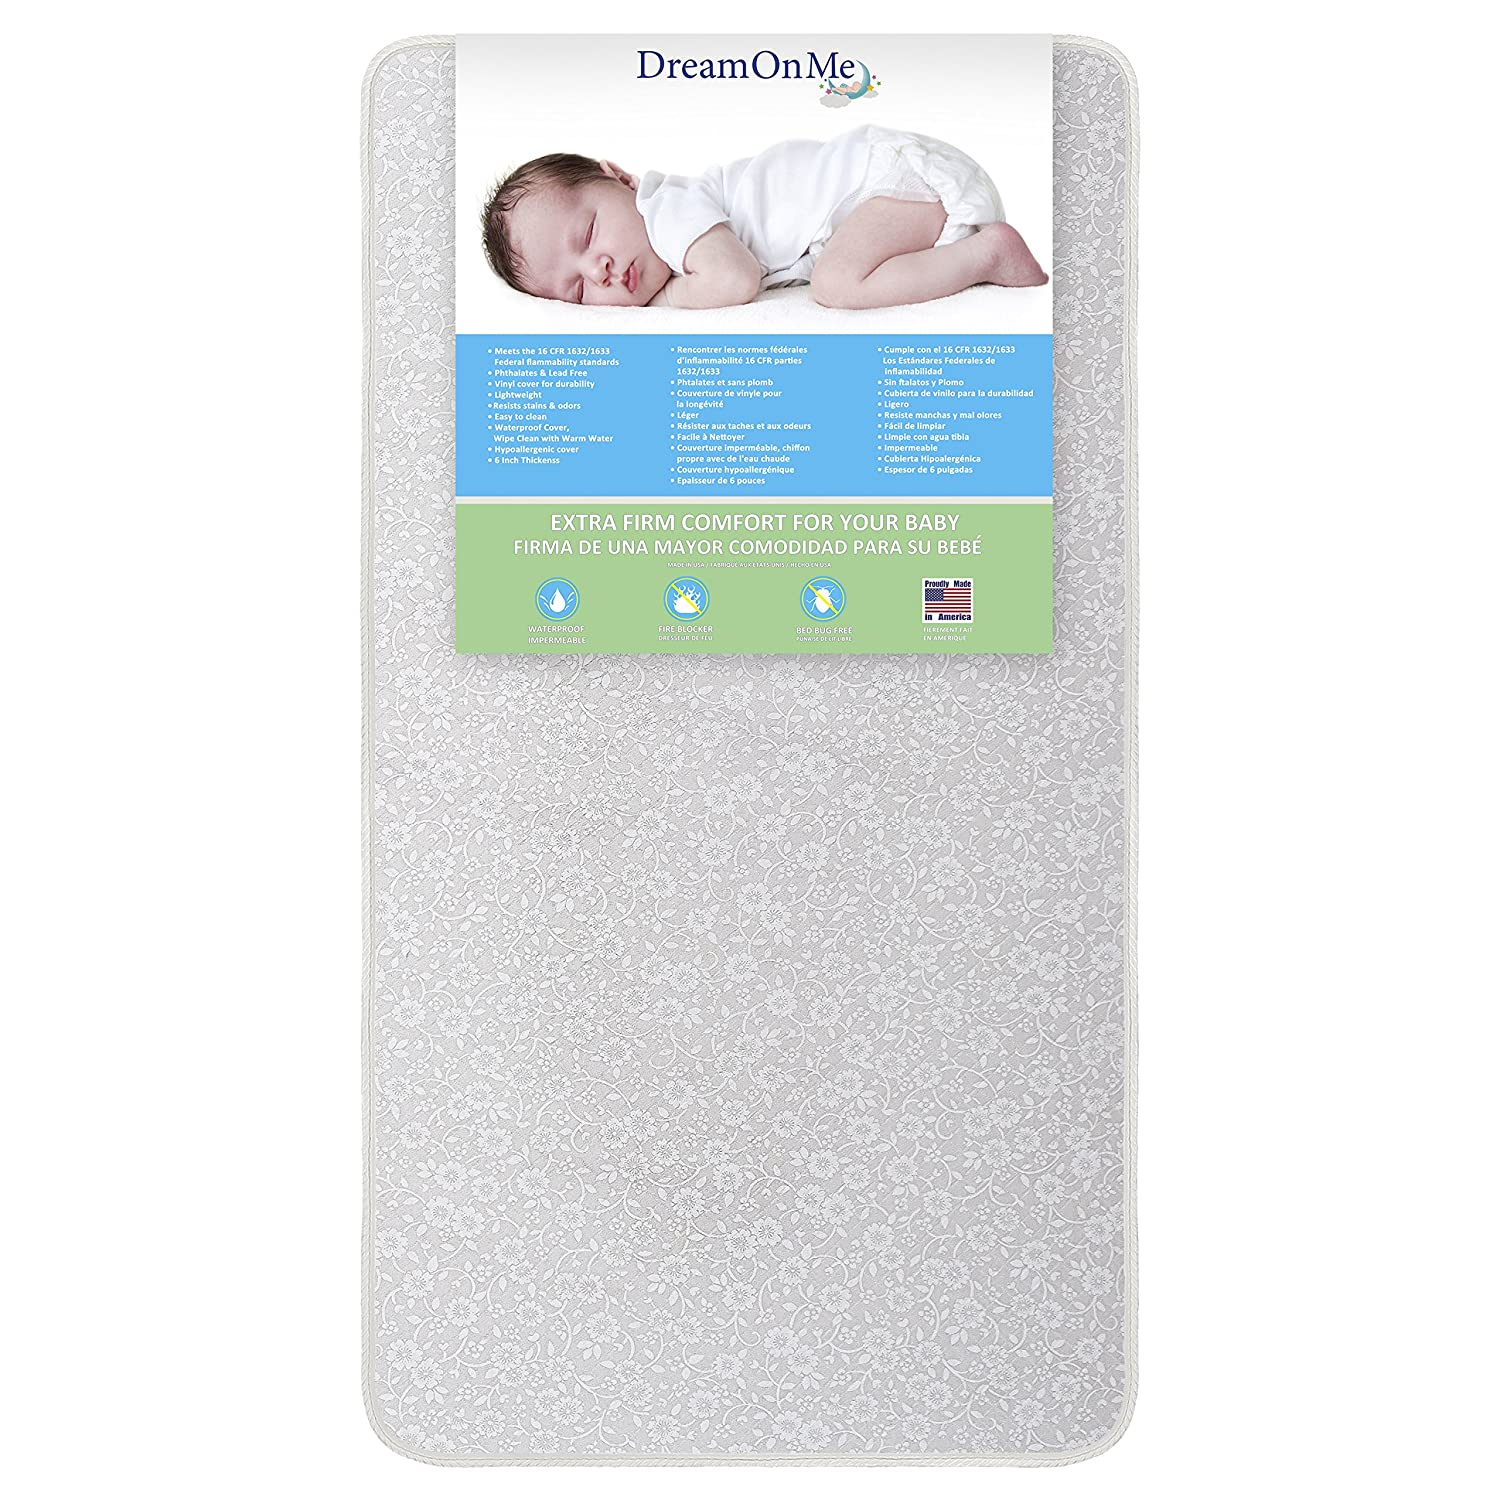 Baby Wipes Pampers Baby Diaper Wipes 9 Refill Dispenser Tub Sensitive Water Based 576 Count Fine Workmanship Diapering